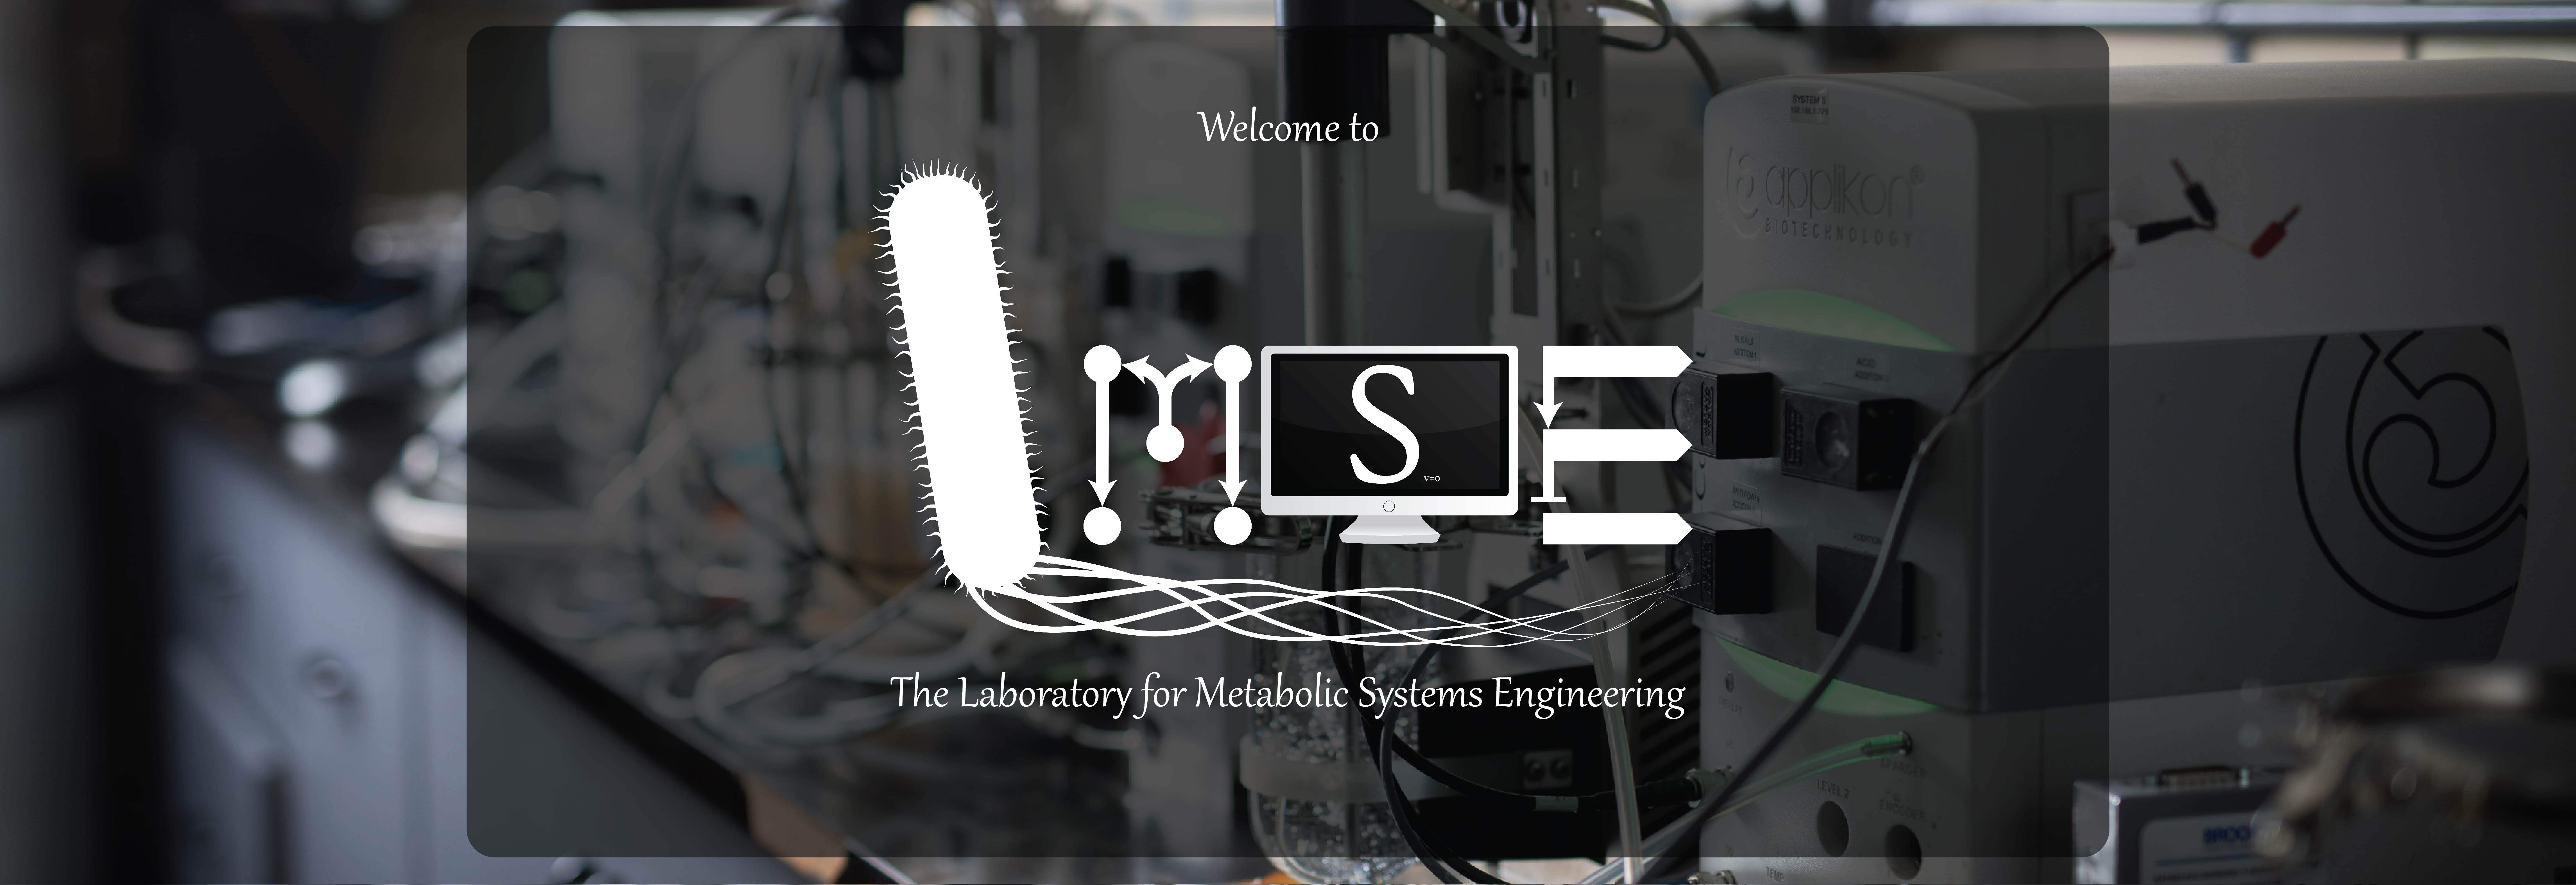 Laboratory for Metabolic Systems Engineering